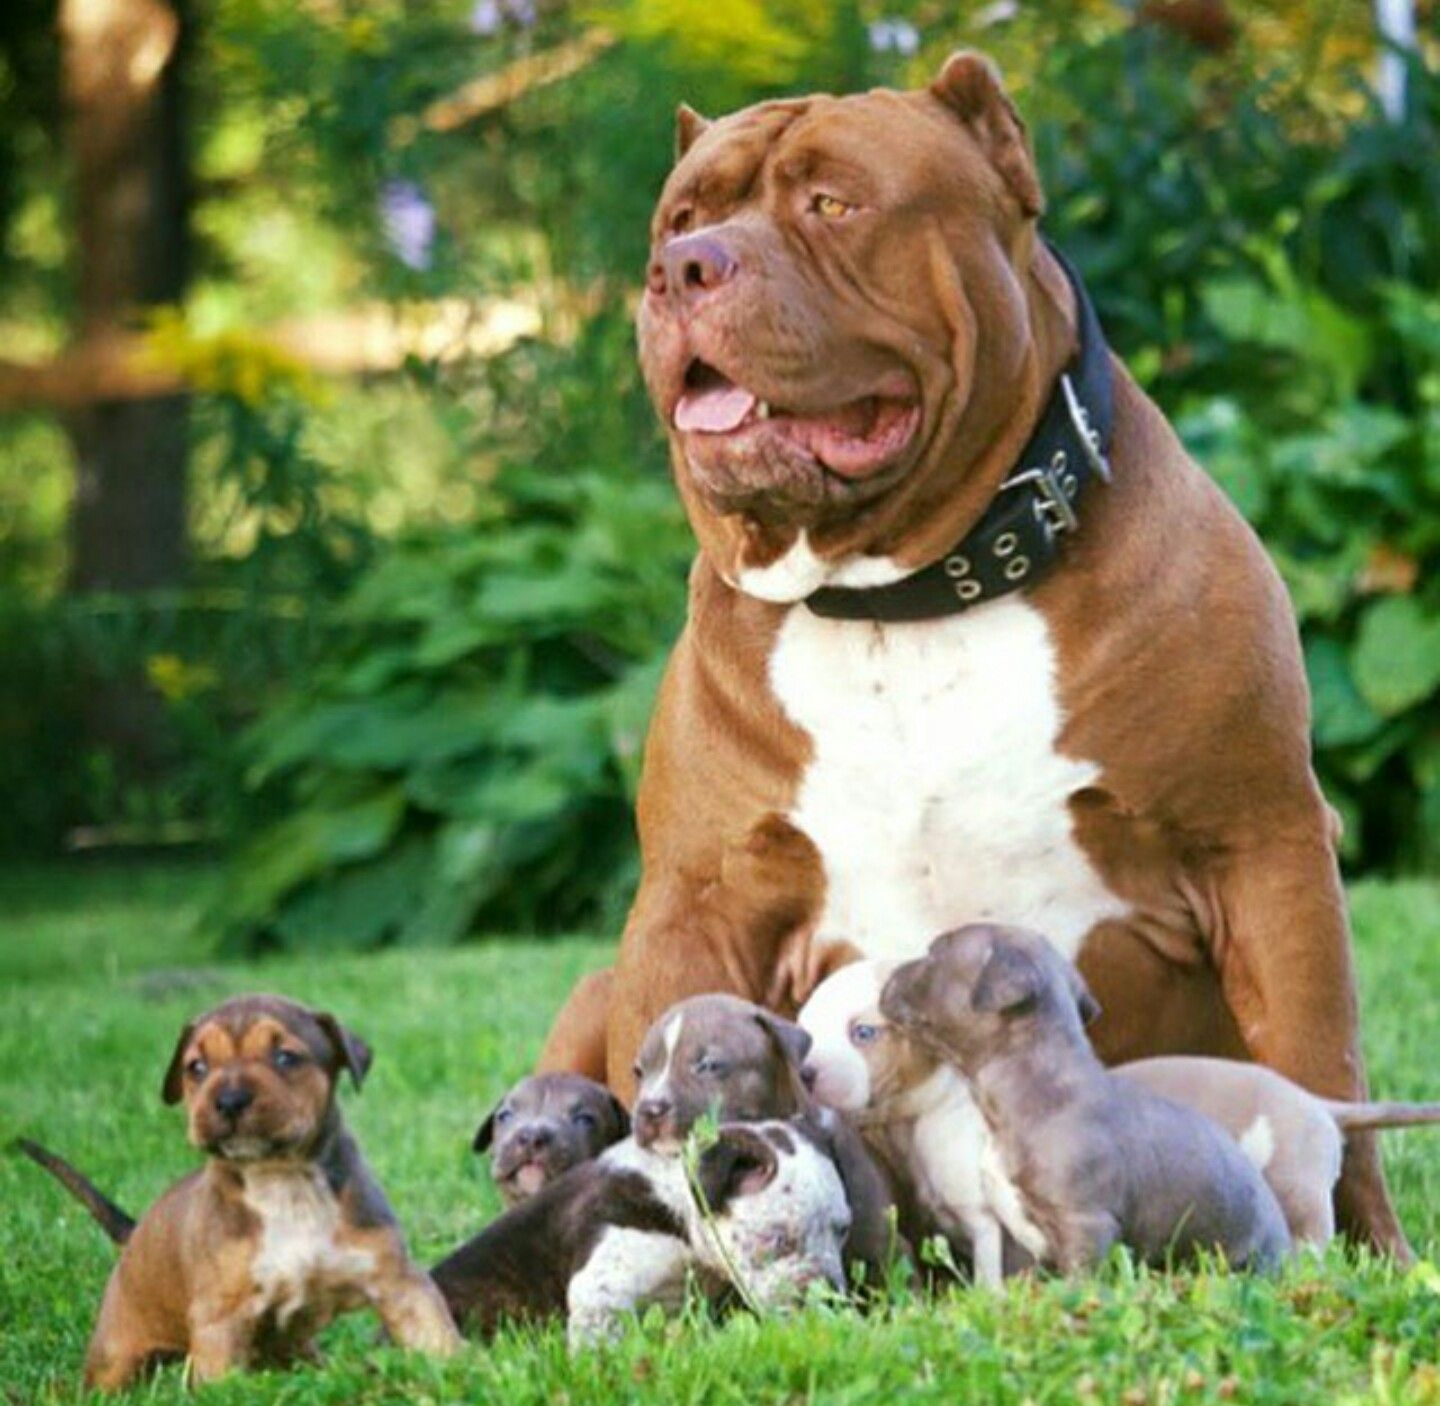 World39s Largest Pitbull Hulk Has 8 Puppies Worth Up To Half A